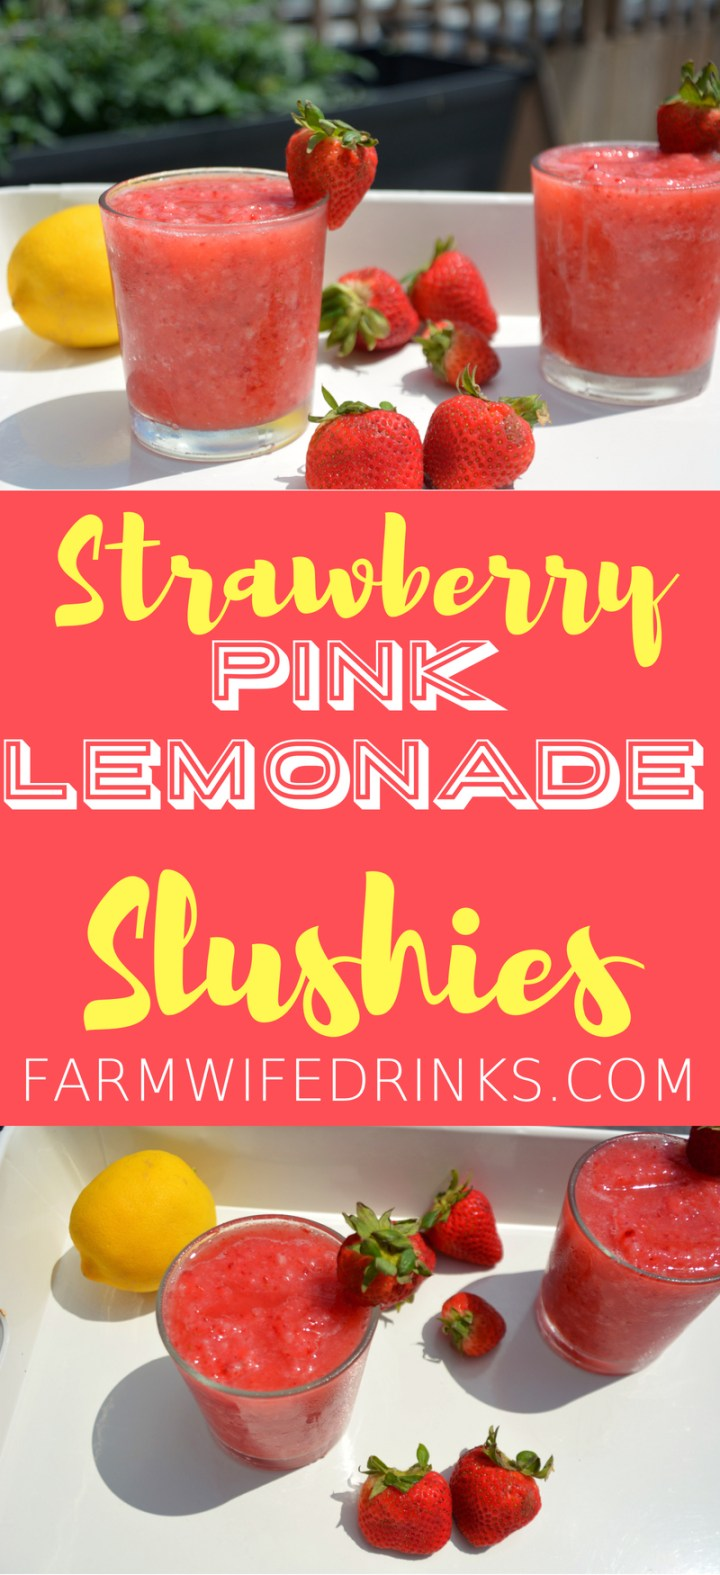 Strawberry Pink Lemonade Slushies combine frozen strawberries with pink lemonade to make a great, refreshing frozen mocktail for the kids and adults to enjoy all day long.